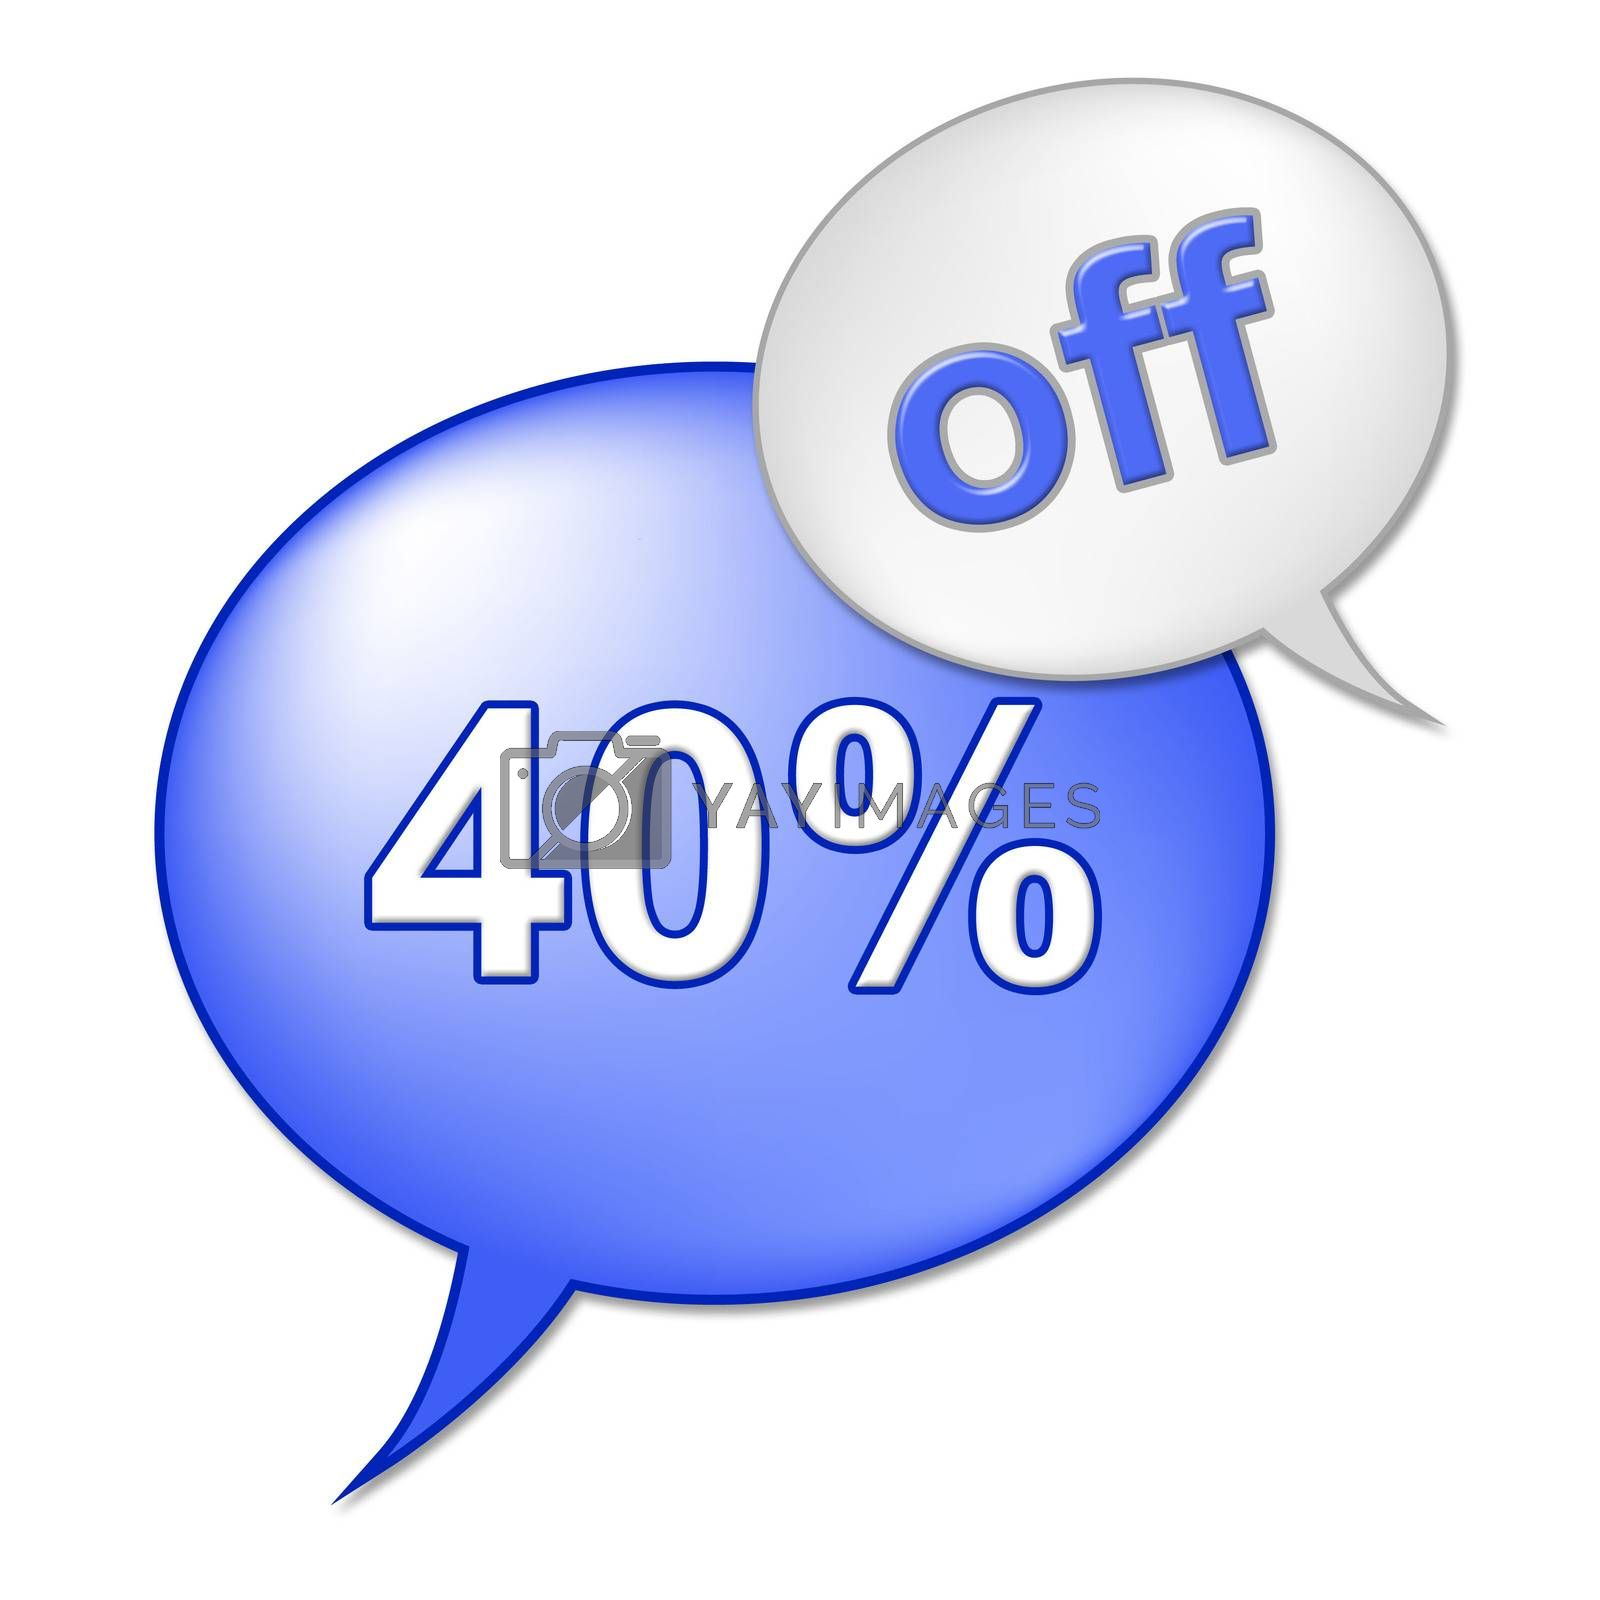 Forty Percent Off Indicates Retail Savings And Cheap by stuartmiles